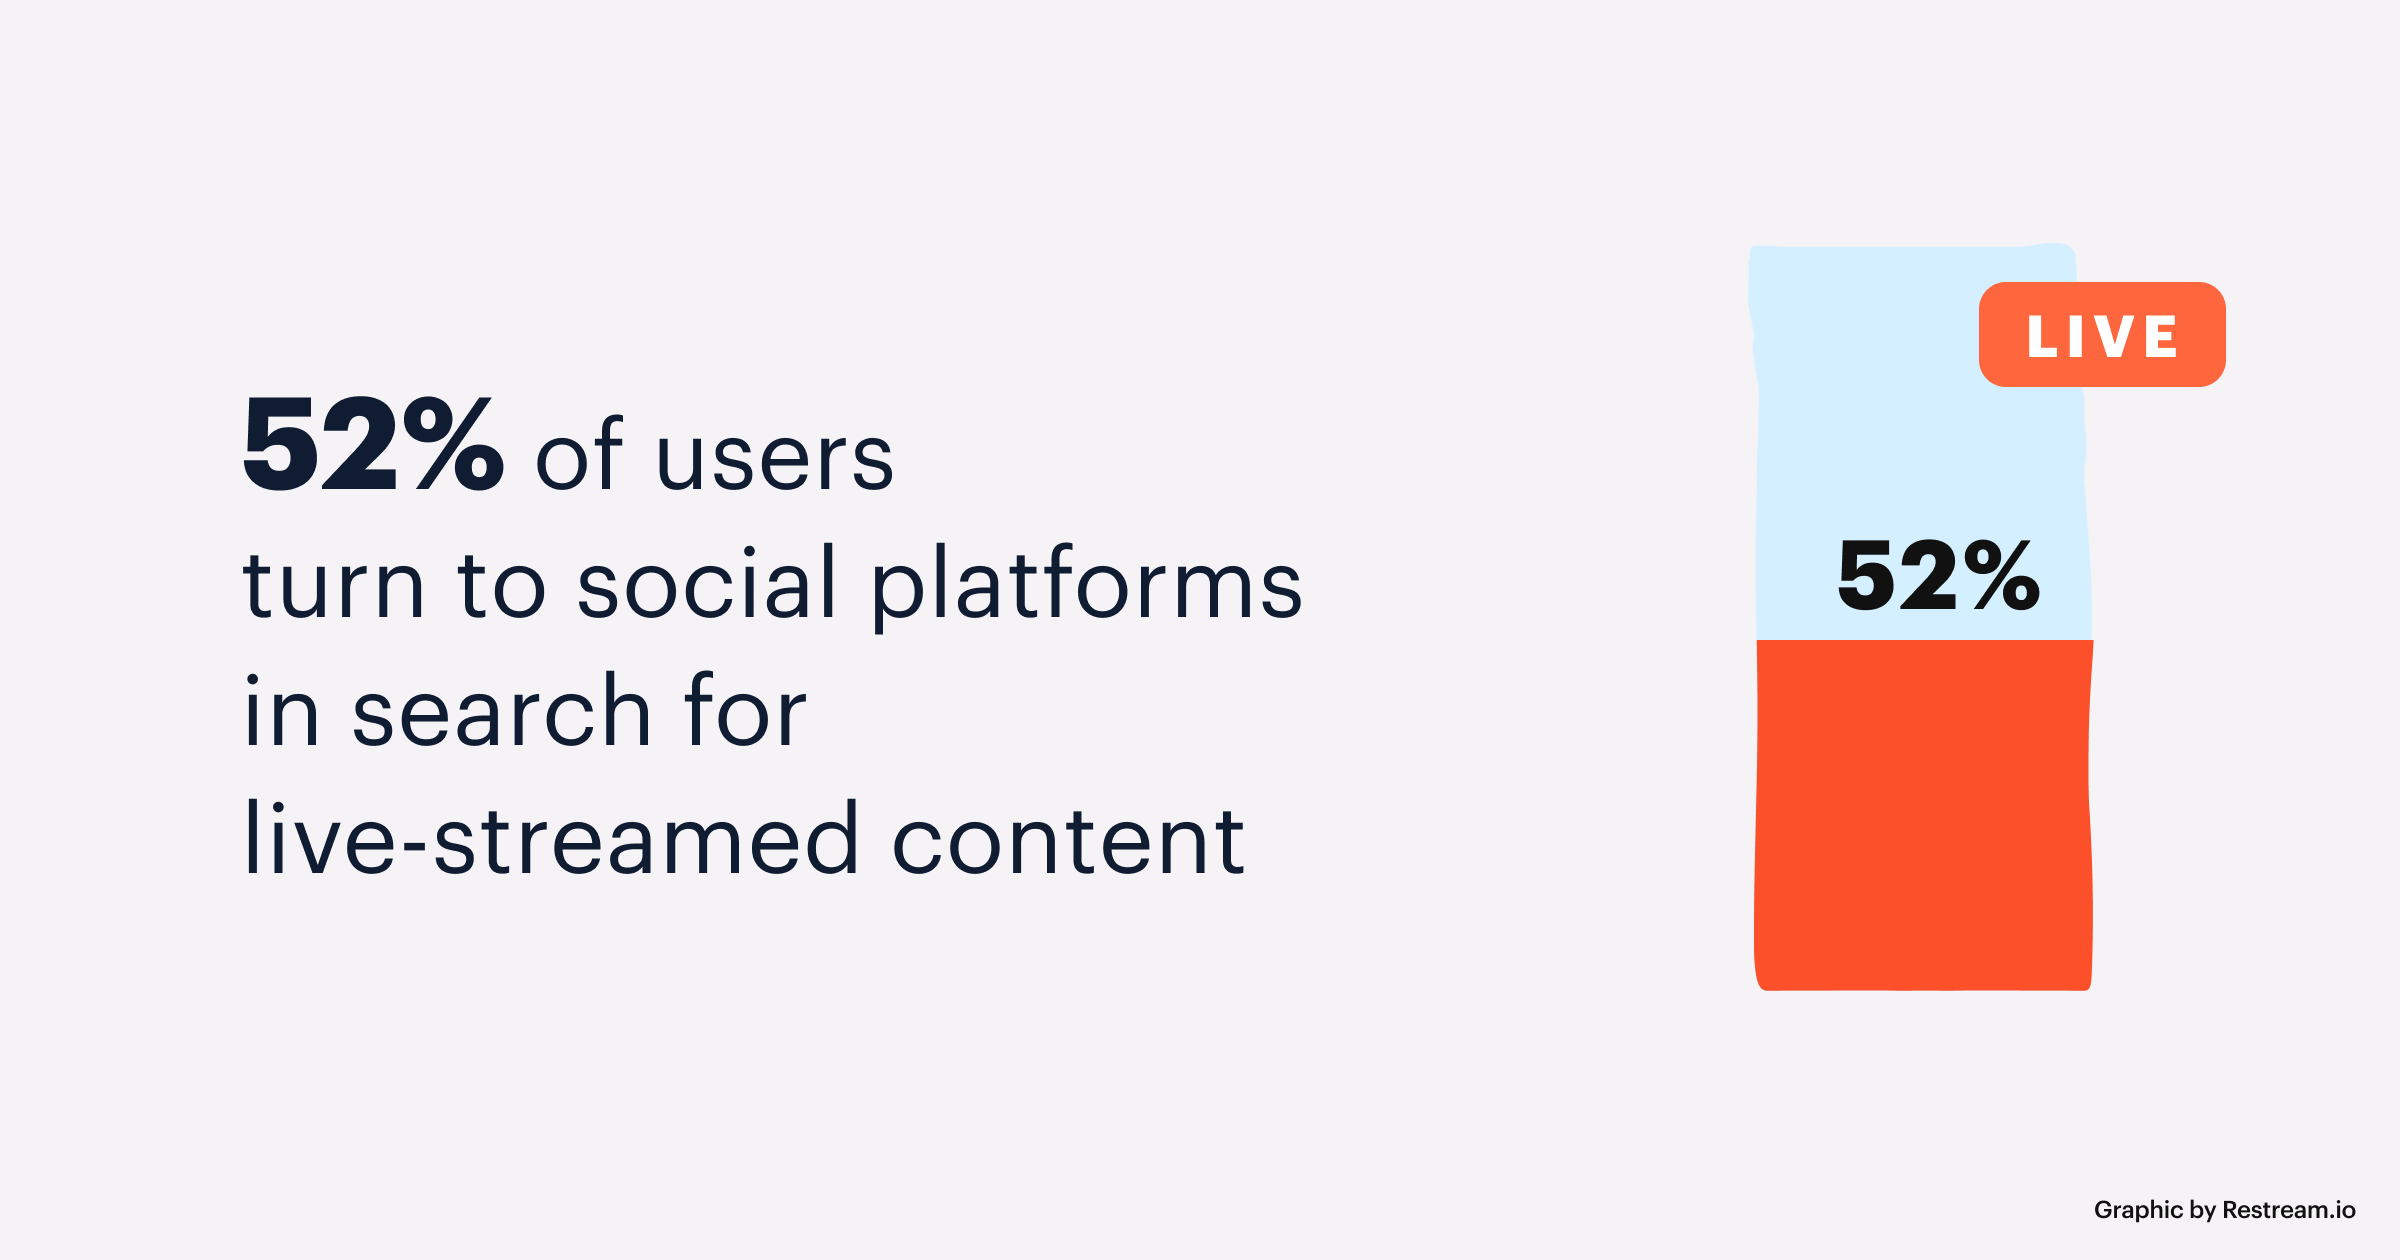 52% turn to social platforms in search of live-streamed content